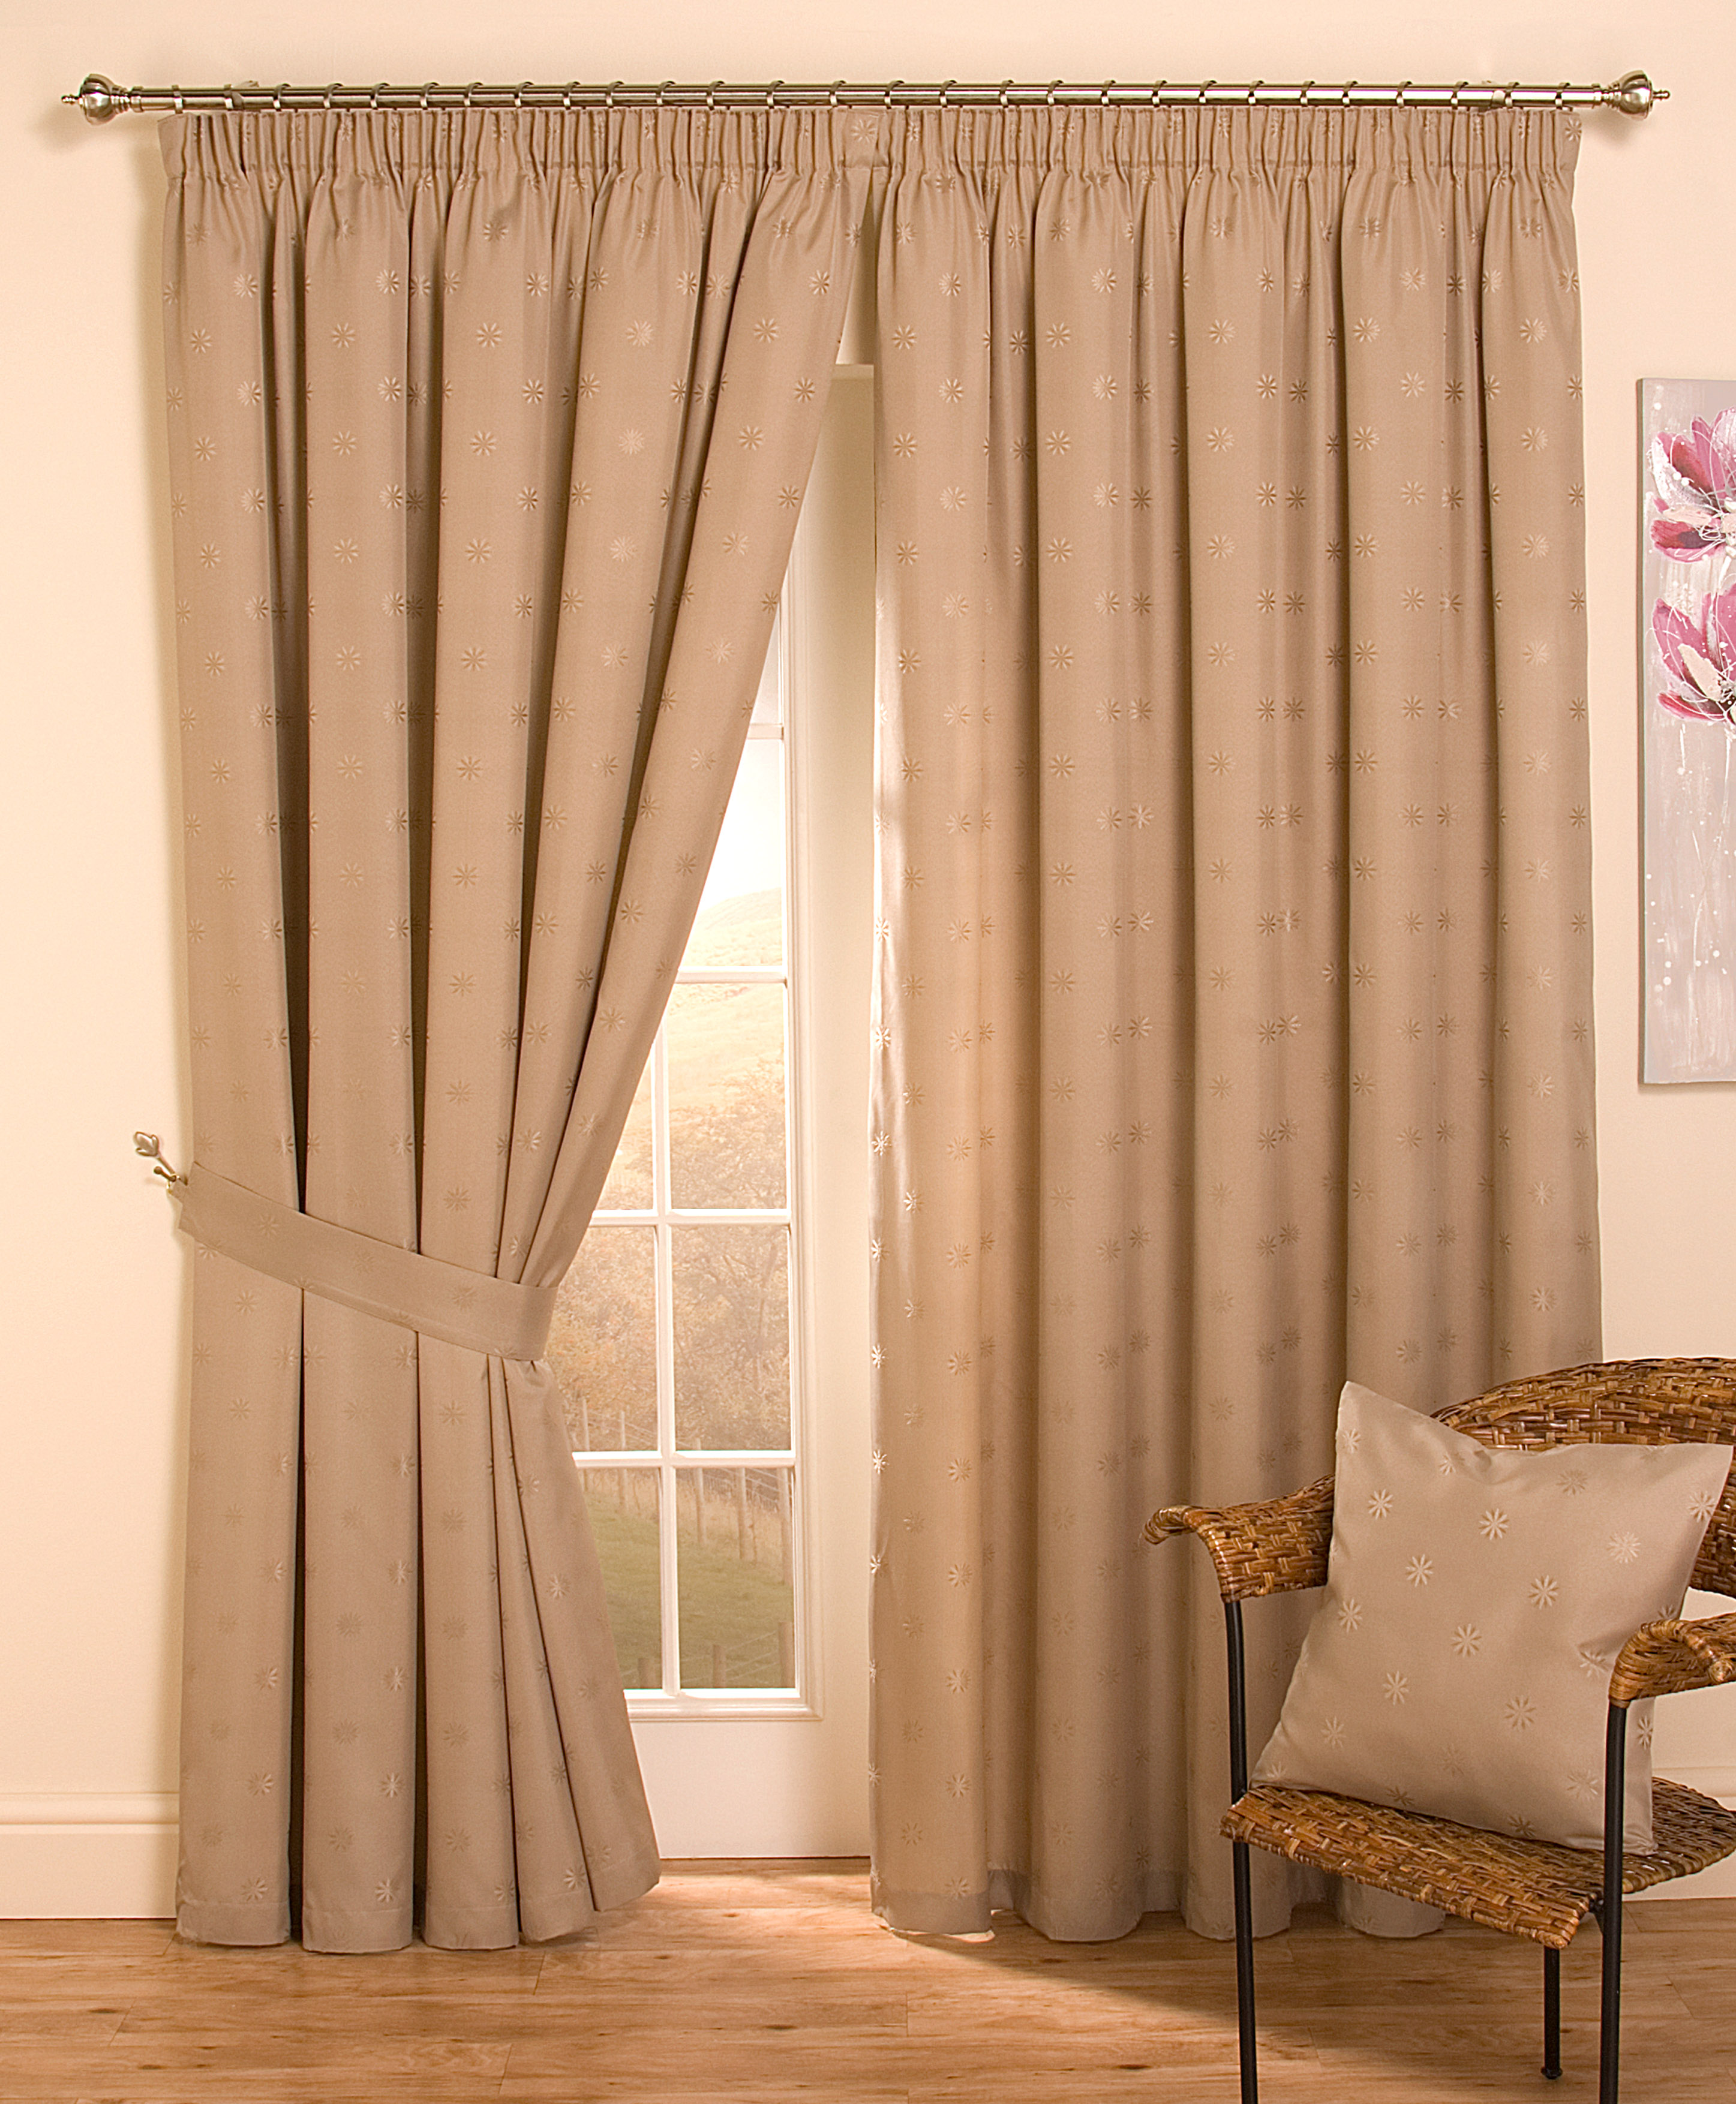 Cheap-Full-Lined-Tape-Top-Pencil-Pleat-Jacquard- & Cheap Full Lined Tape Top Pencil Pleat Jacquard Curtains \u0026 Thermal ... Pezcame.Com